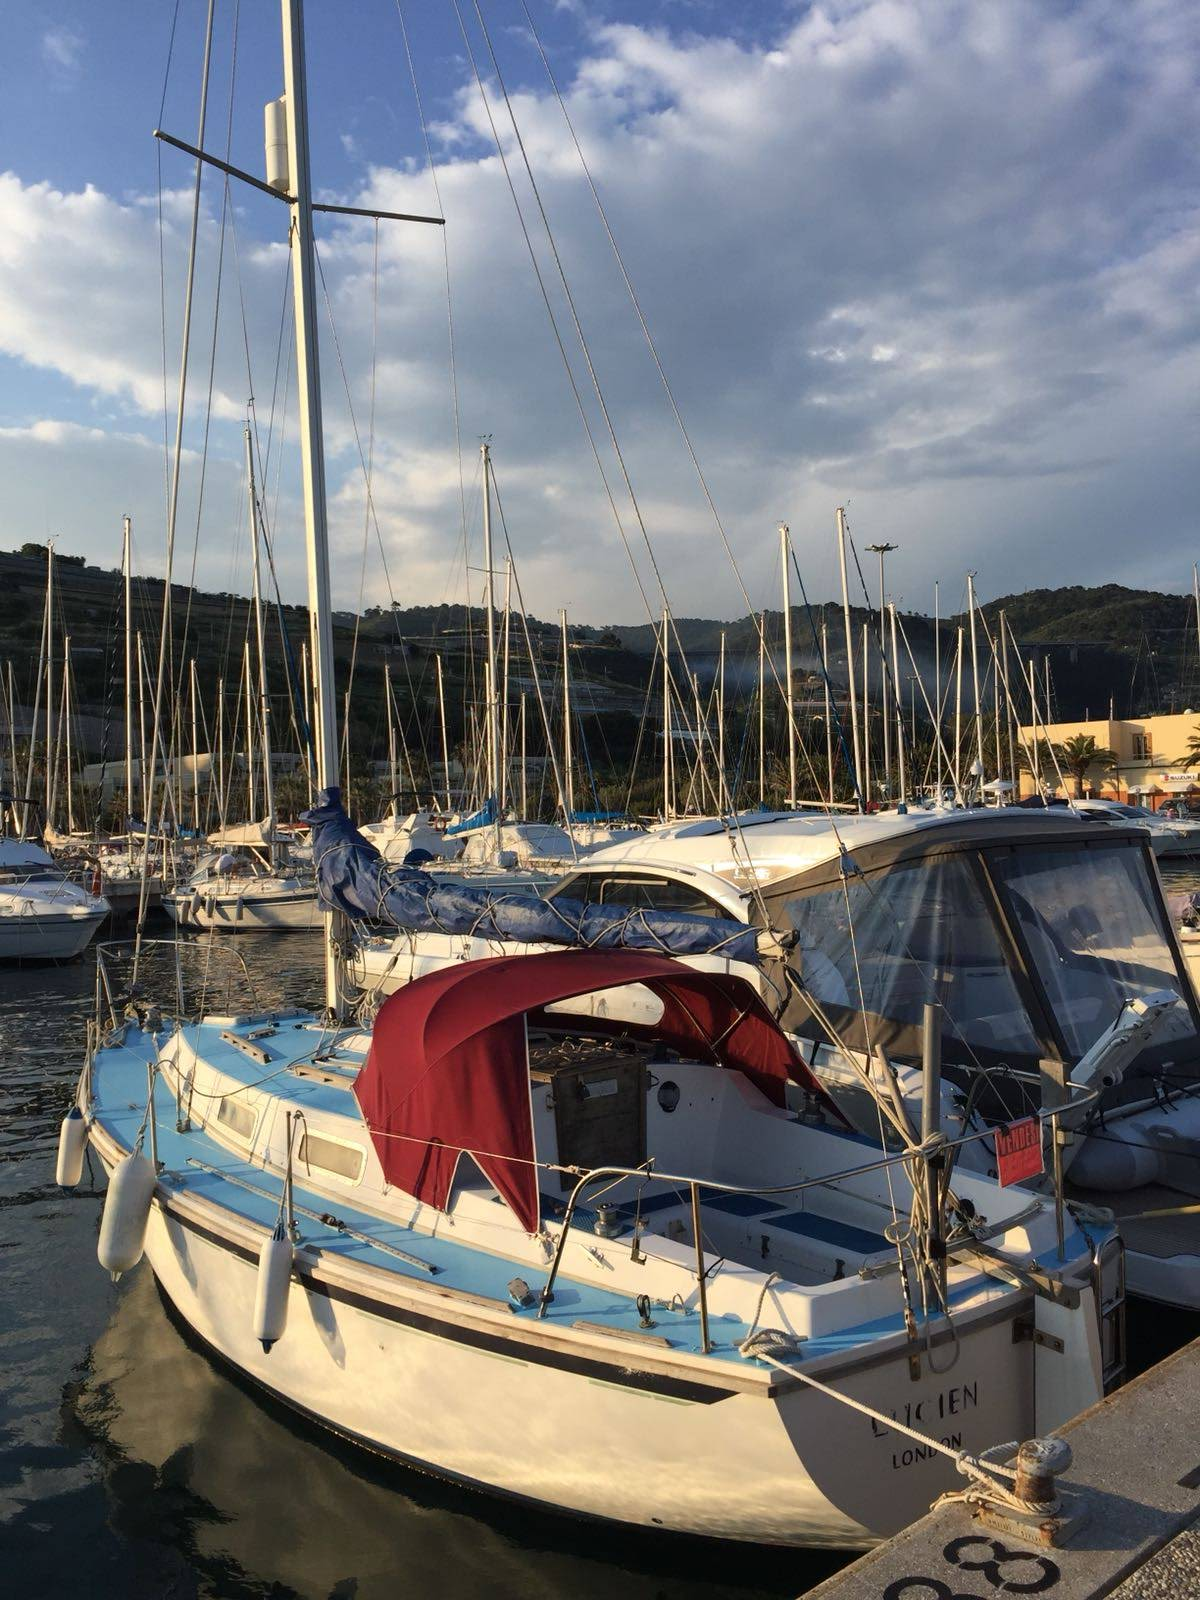 Westerly Konsort sailboat in San Remo, Italy